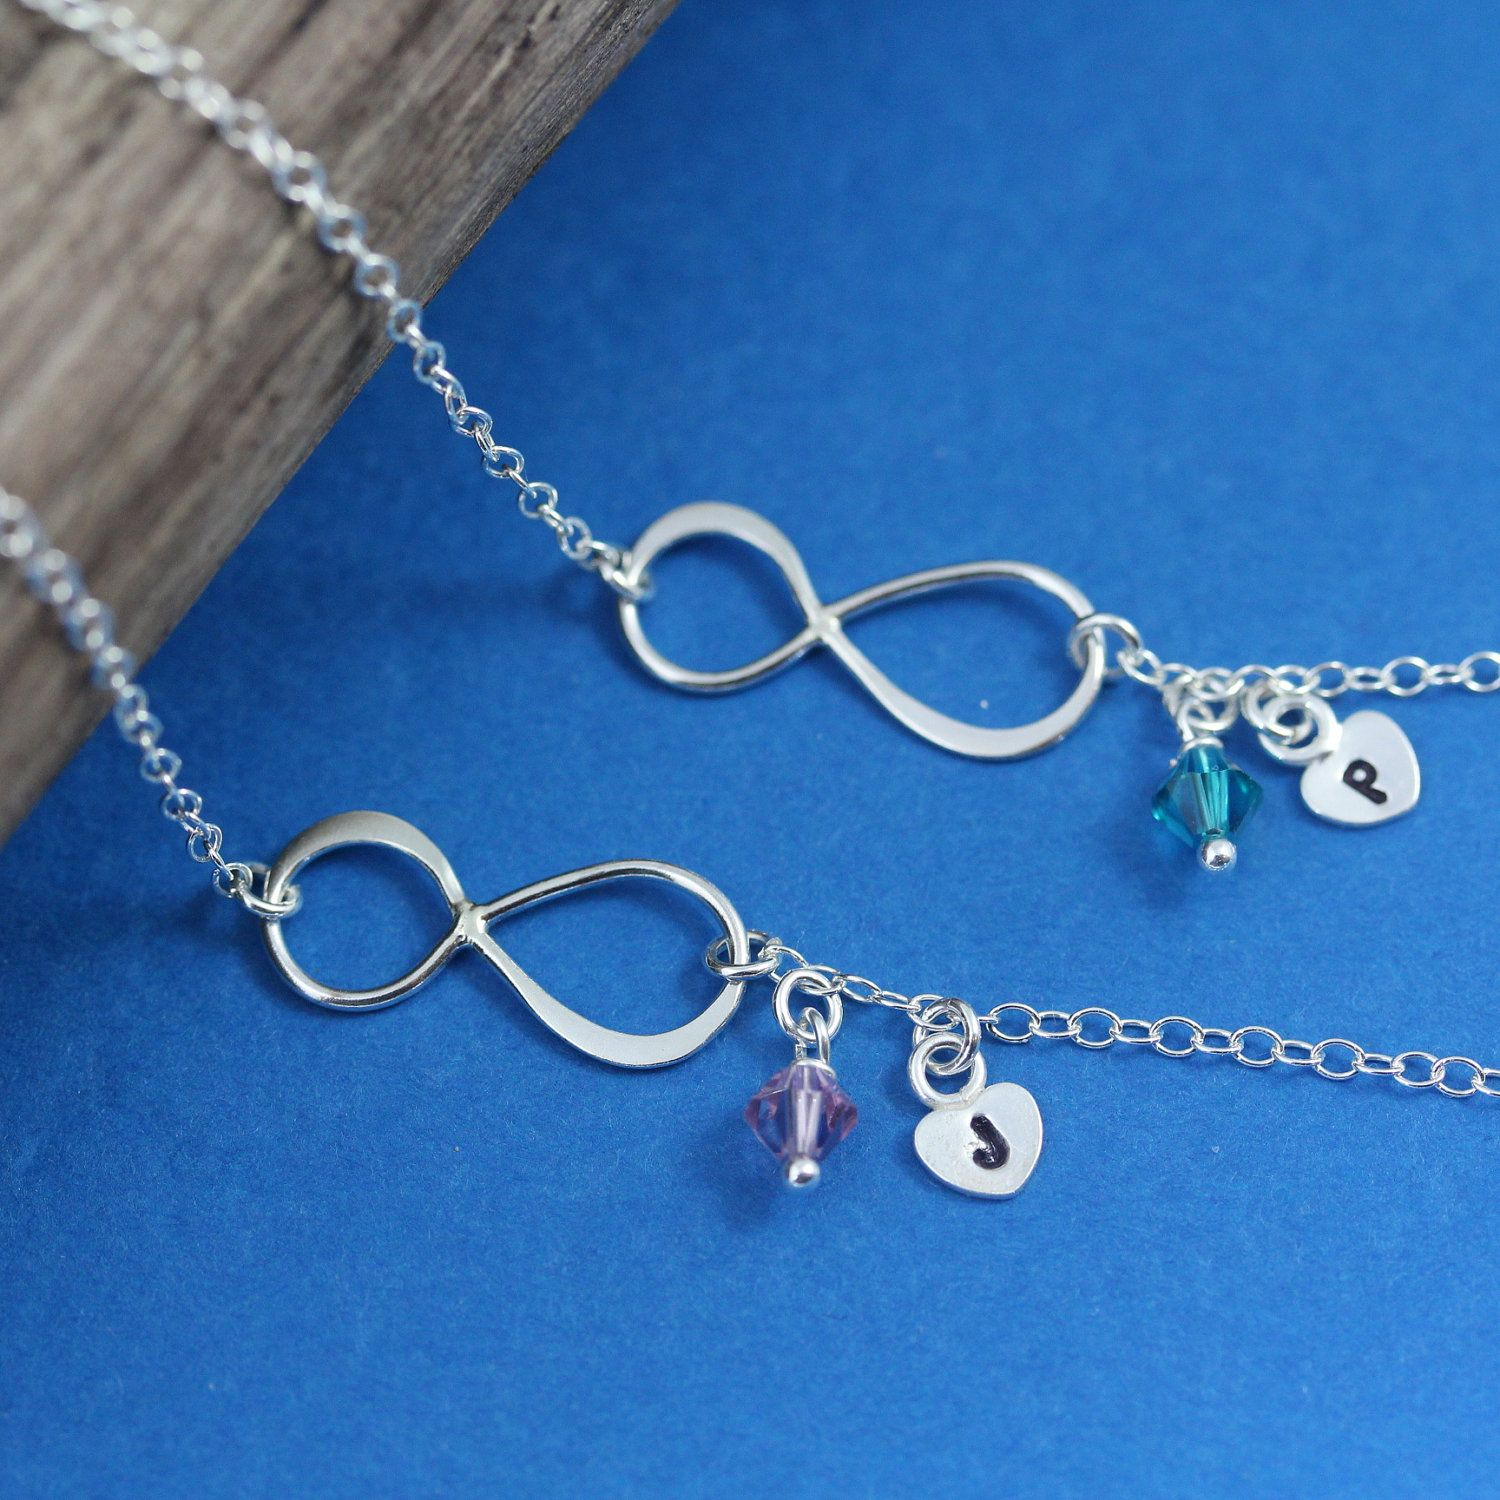 for in necklace the from to infinity mother mom wedding gift bride media daughter law pearl groom of card